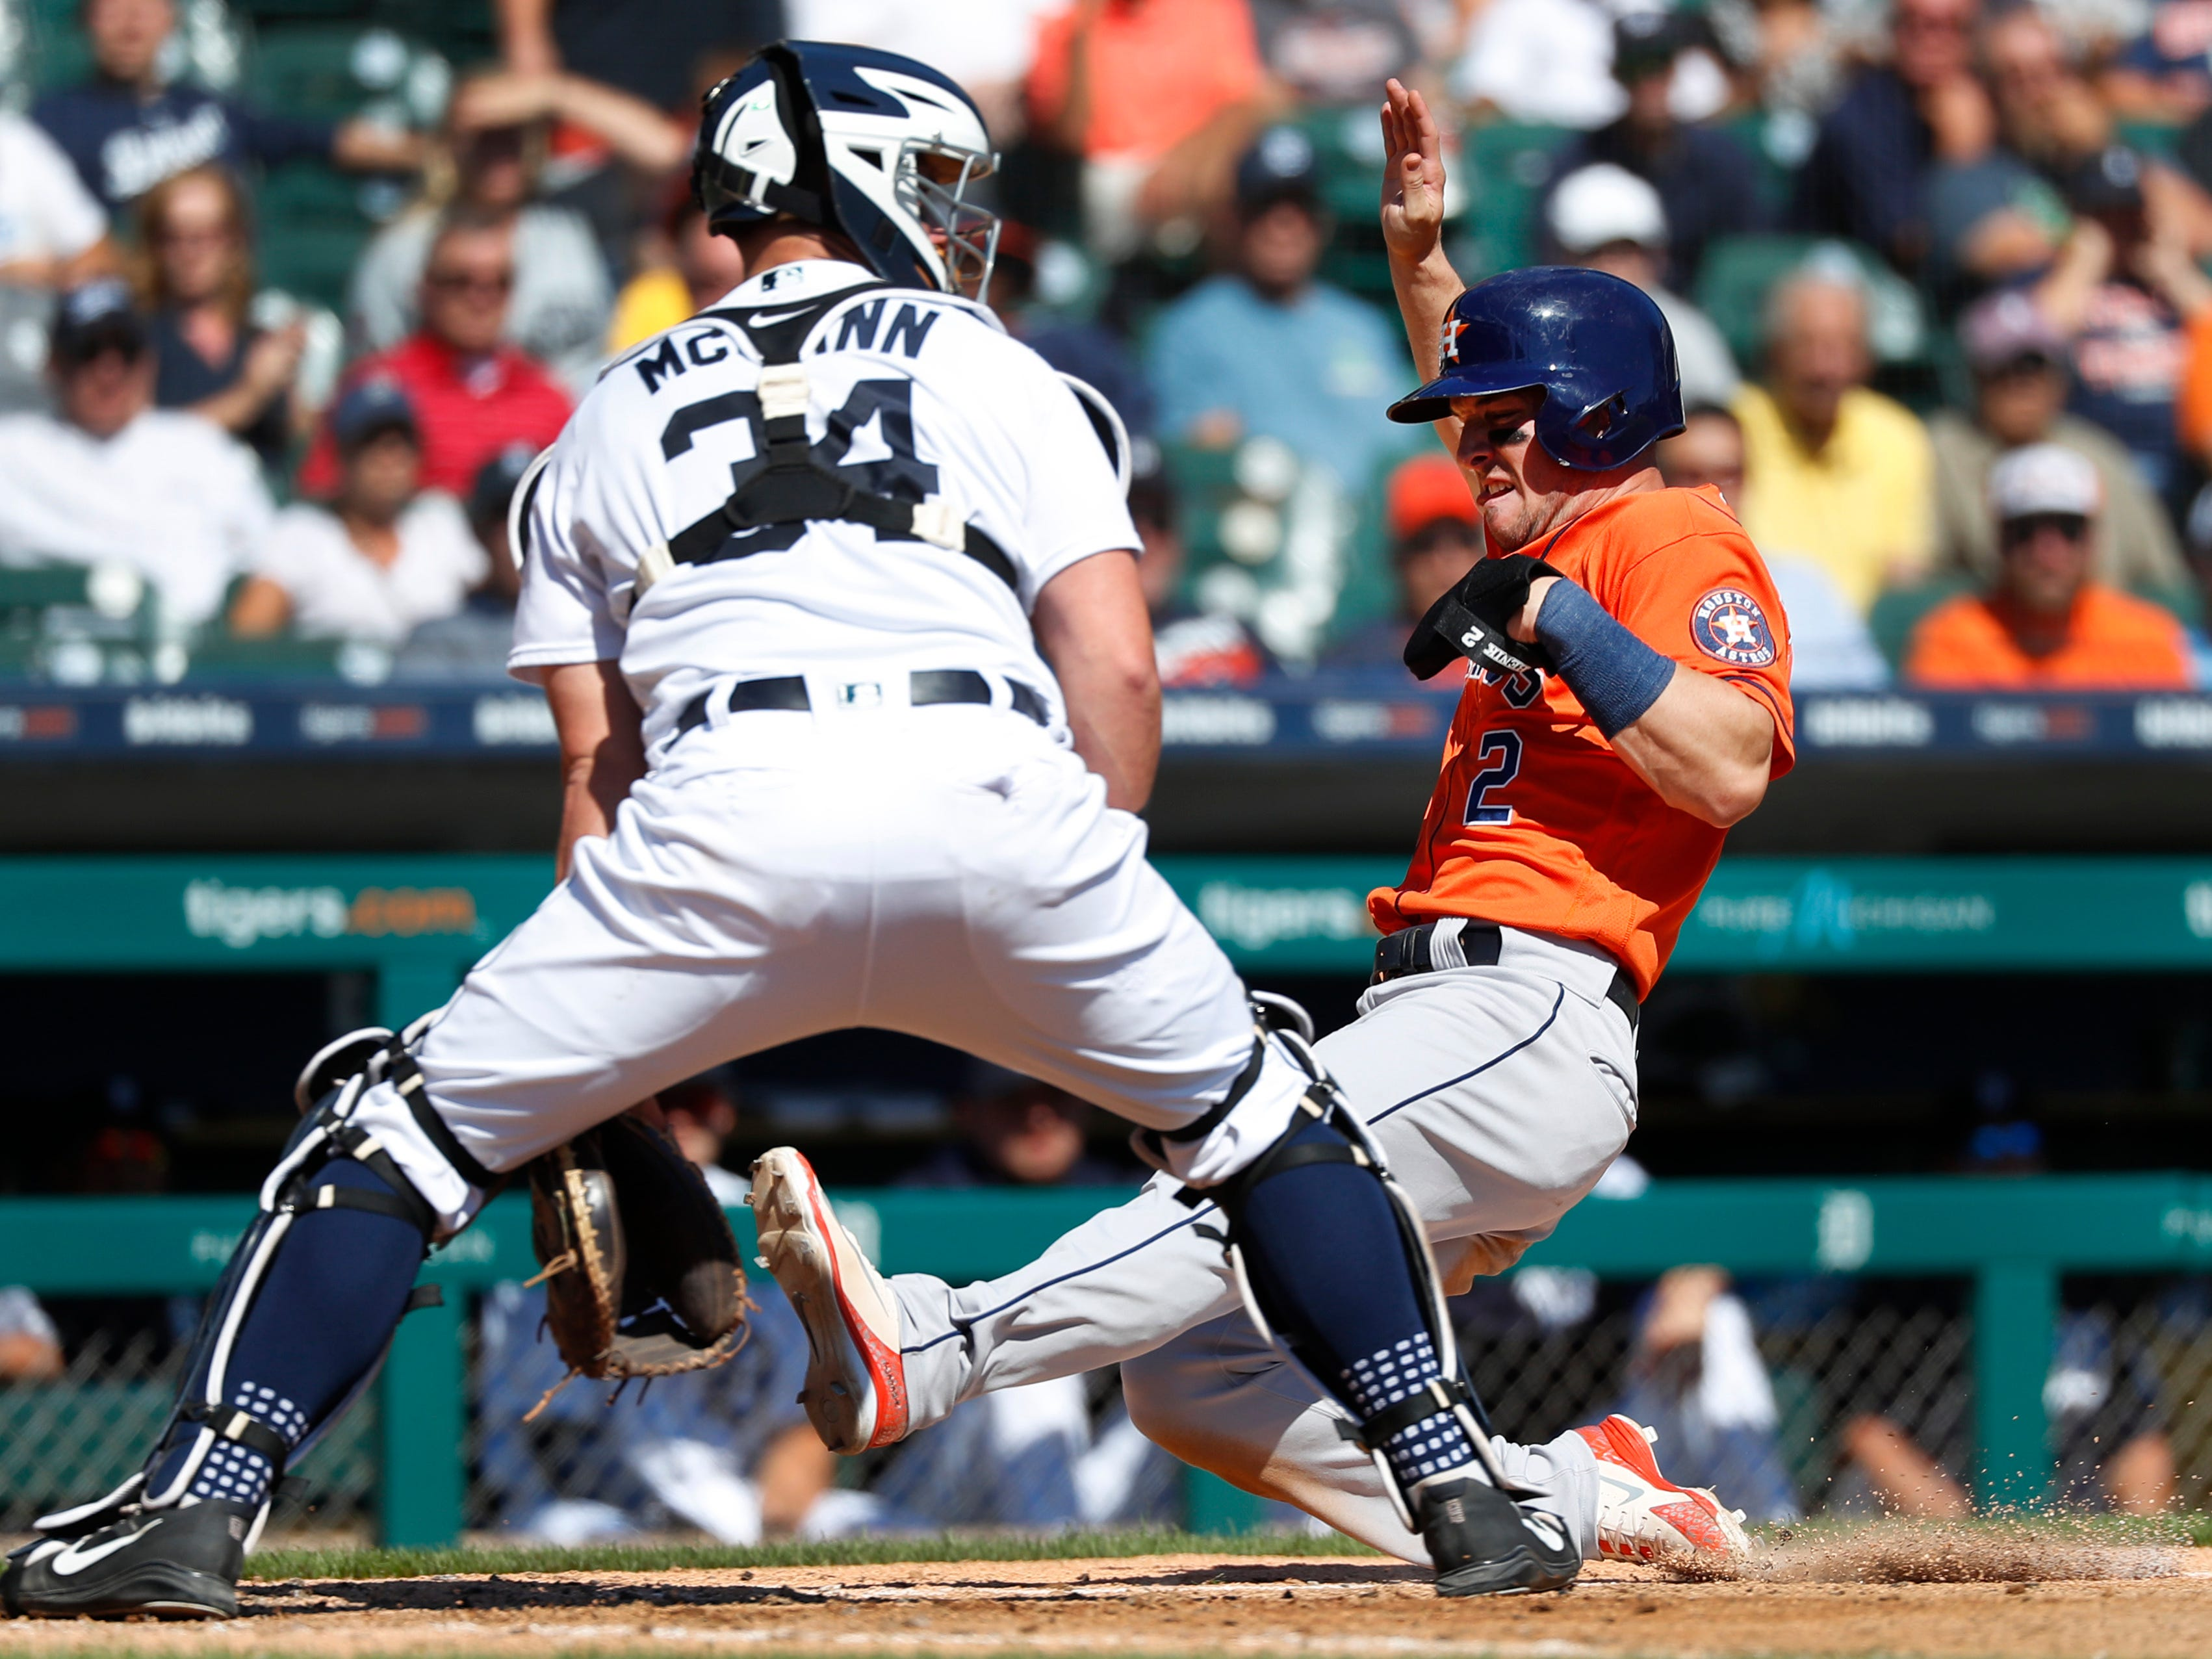 Houston Astros' Alex Bregman (2) scores at home plate as Detroit Tigers catcher James McCann (34) waits for the throw in the fifth inning.